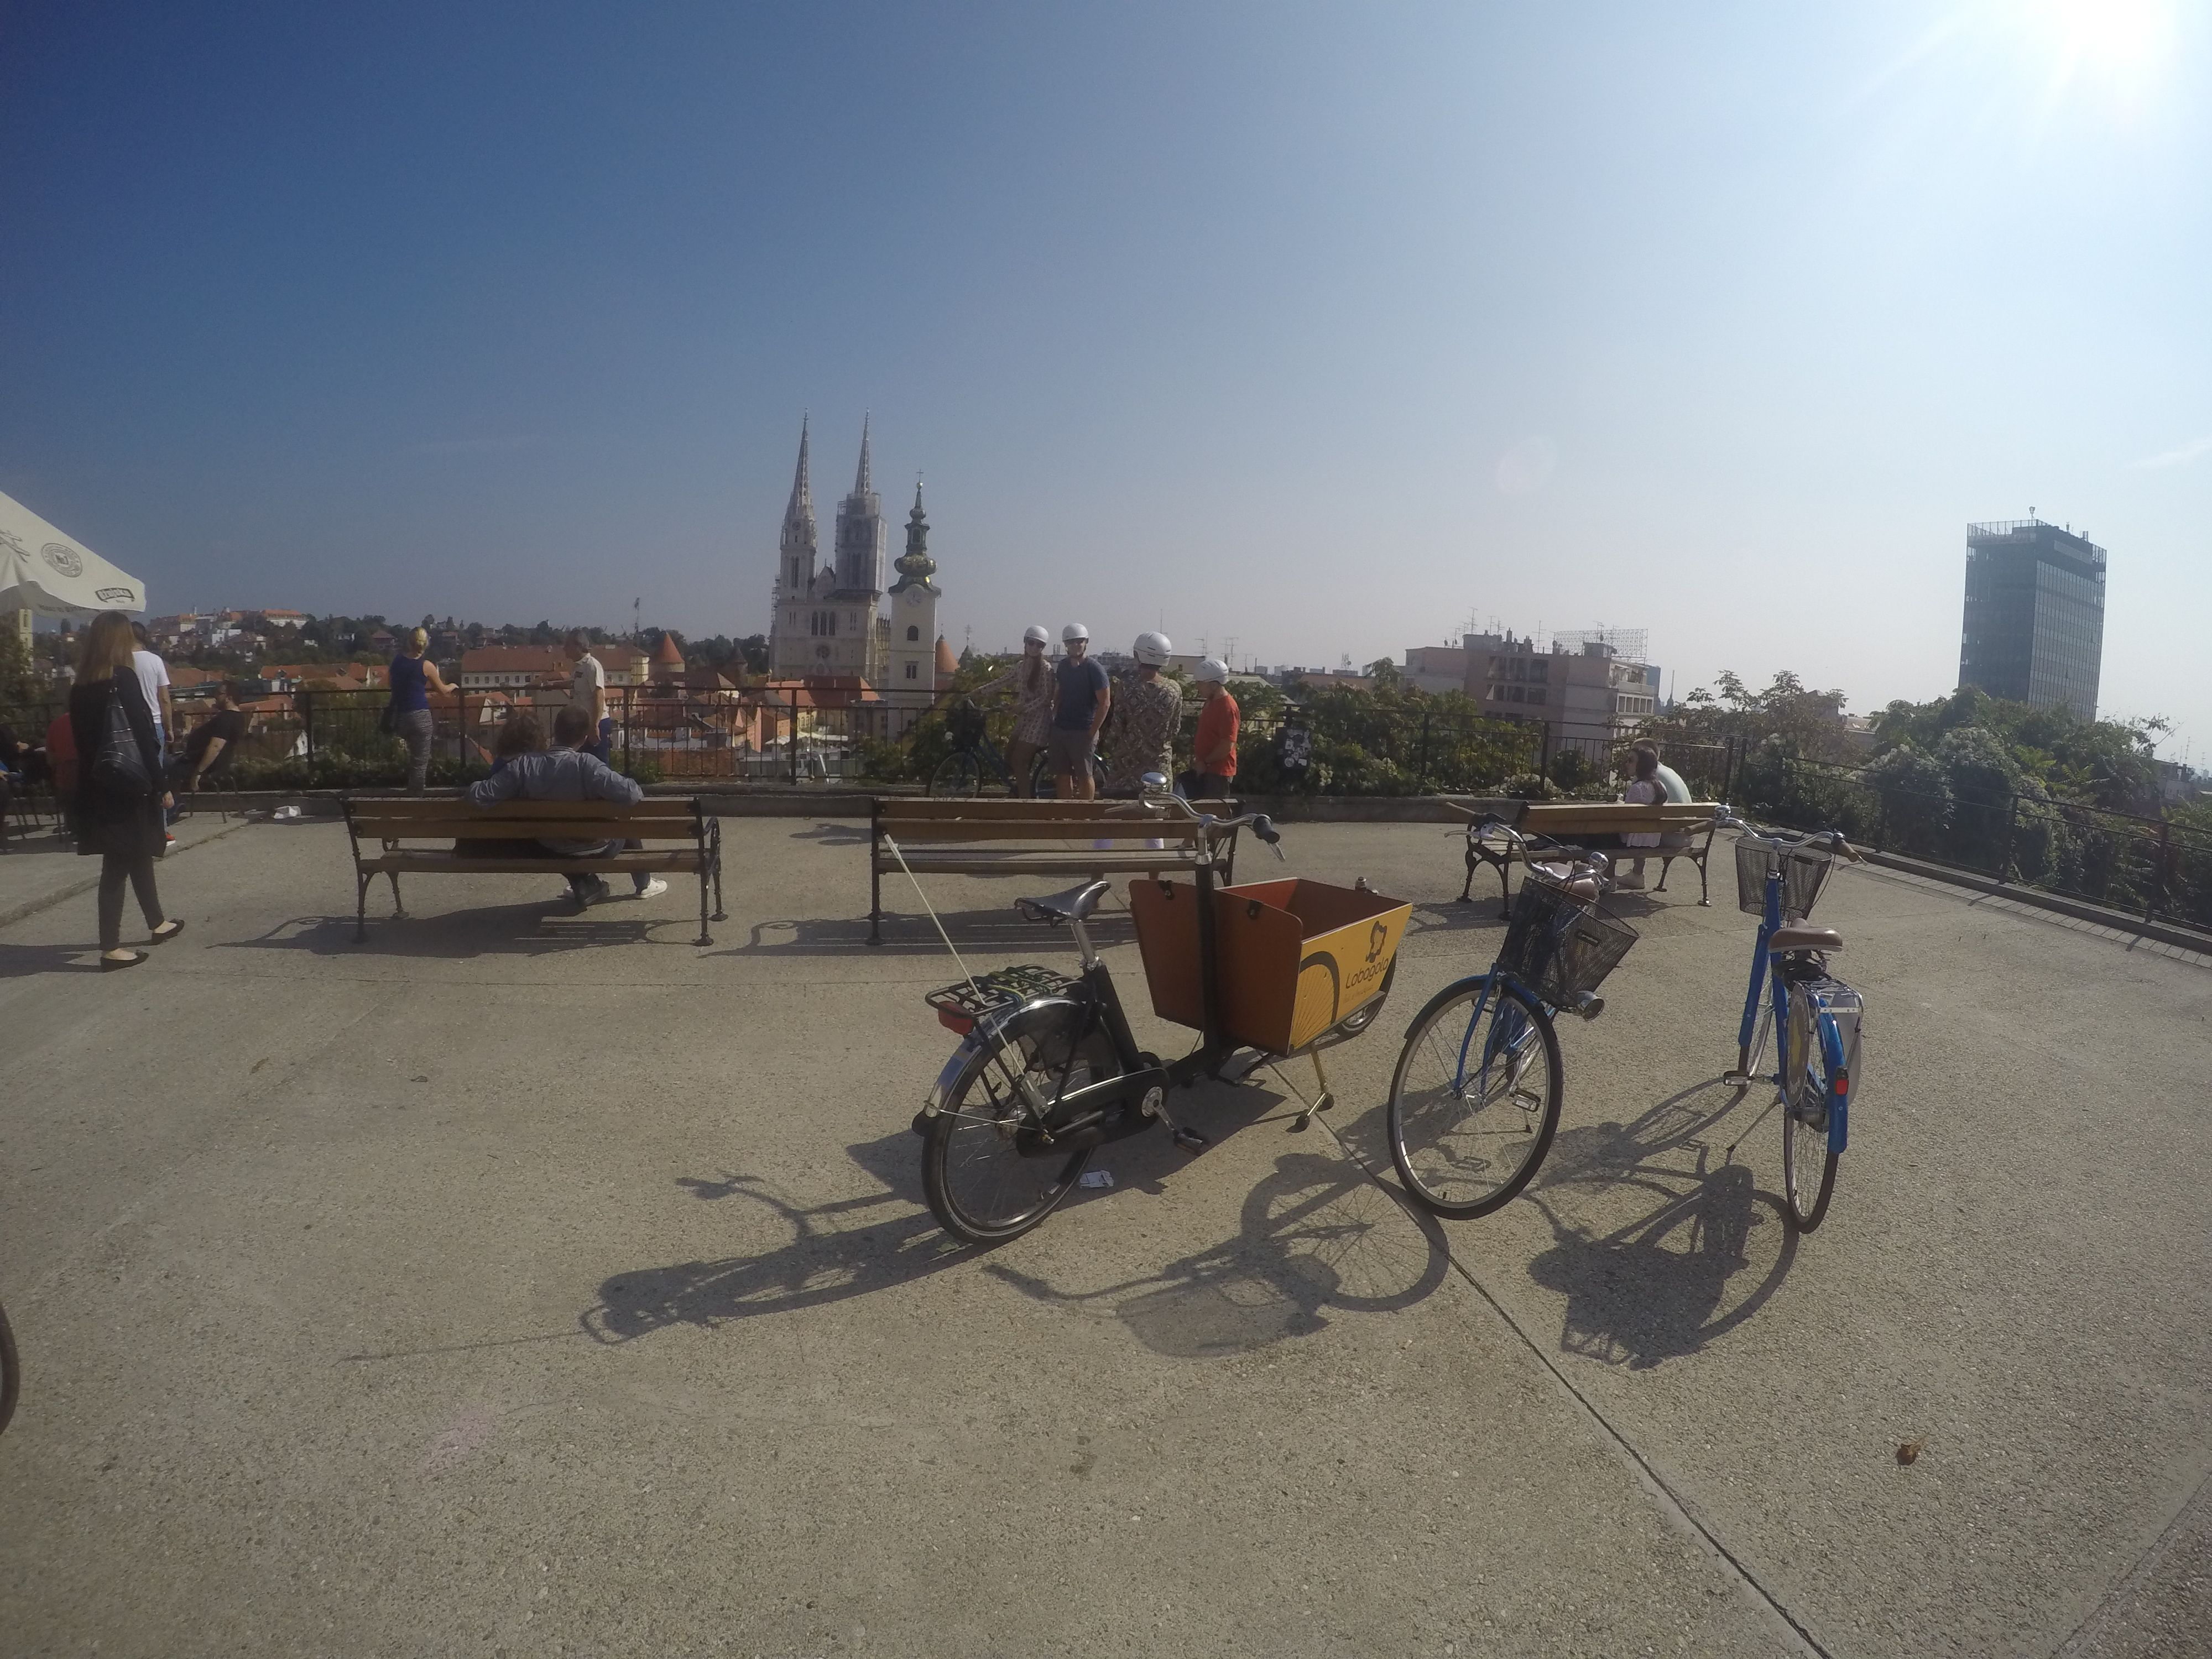 Hop On A Bike With Lobagola Tour And Let Us Take You To All The Best Viewpoints To See Zagreb From Every Corner Of The City Lobagola La Tours Bike Tour